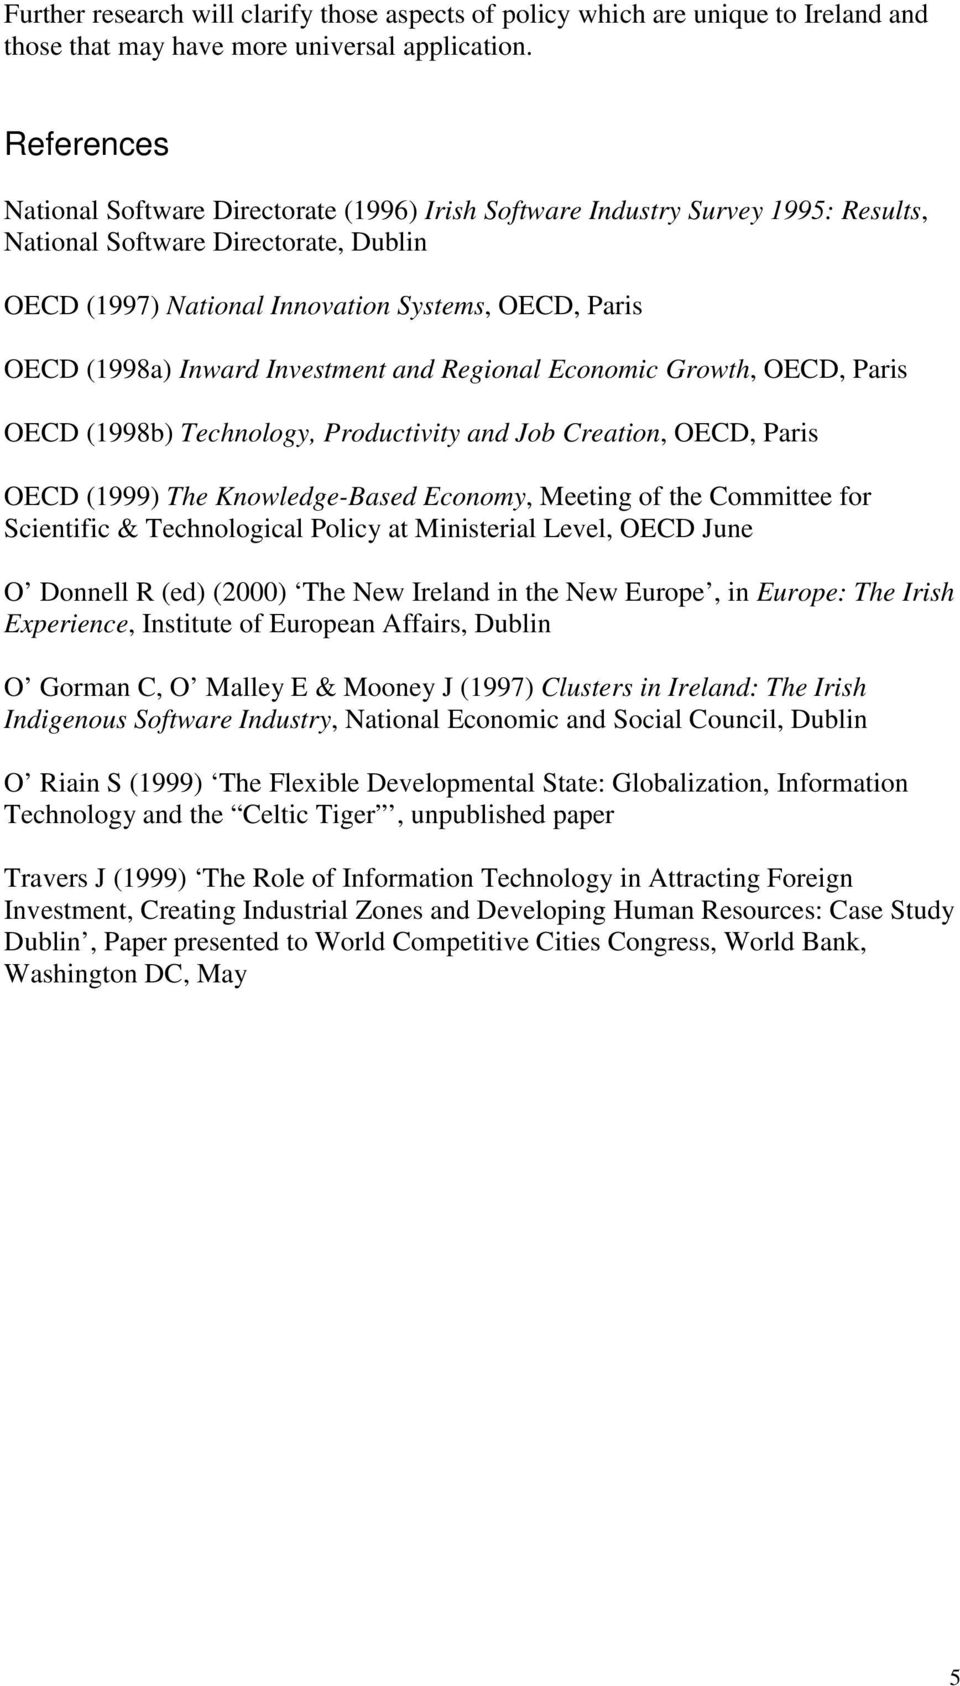 Inward Investment and Regional Economic Growth, OECD, Paris OECD (1998b) Technology, Productivity and Job Creation, OECD, Paris OECD (1999) The Knowledge-Based Economy, Meeting of the Committee for